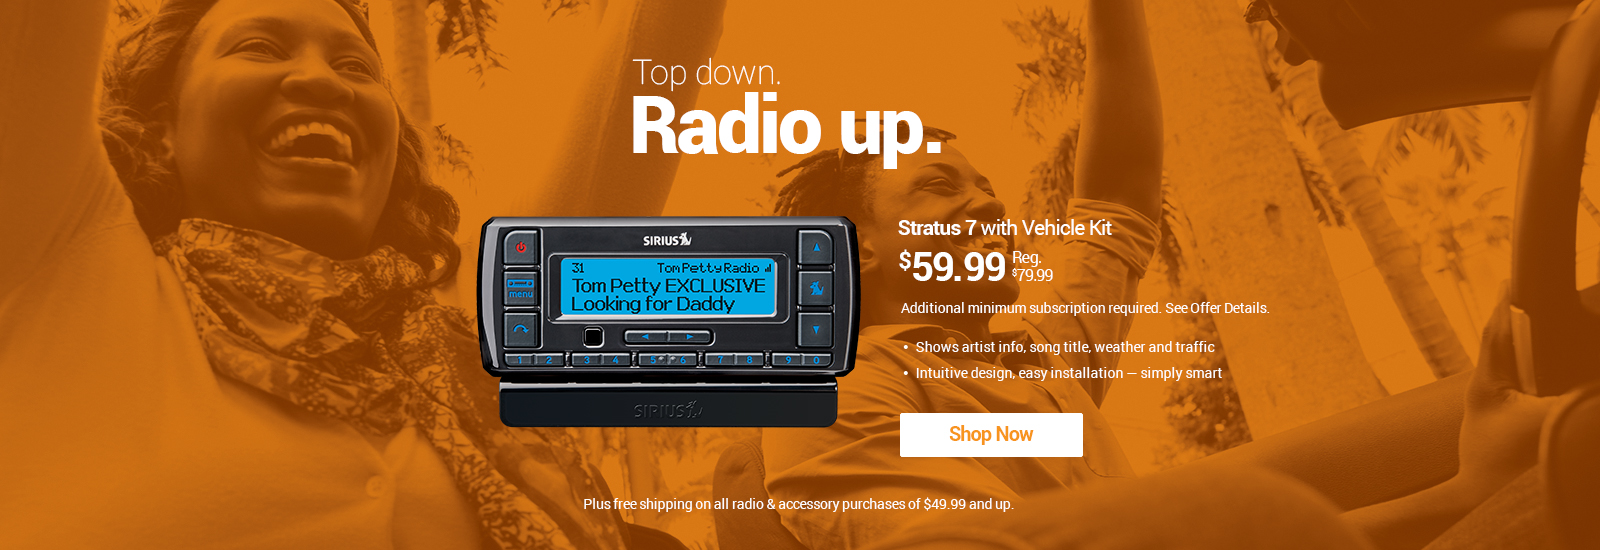 Stratus 7 Radio $59.99 with new subscription required Shop Now